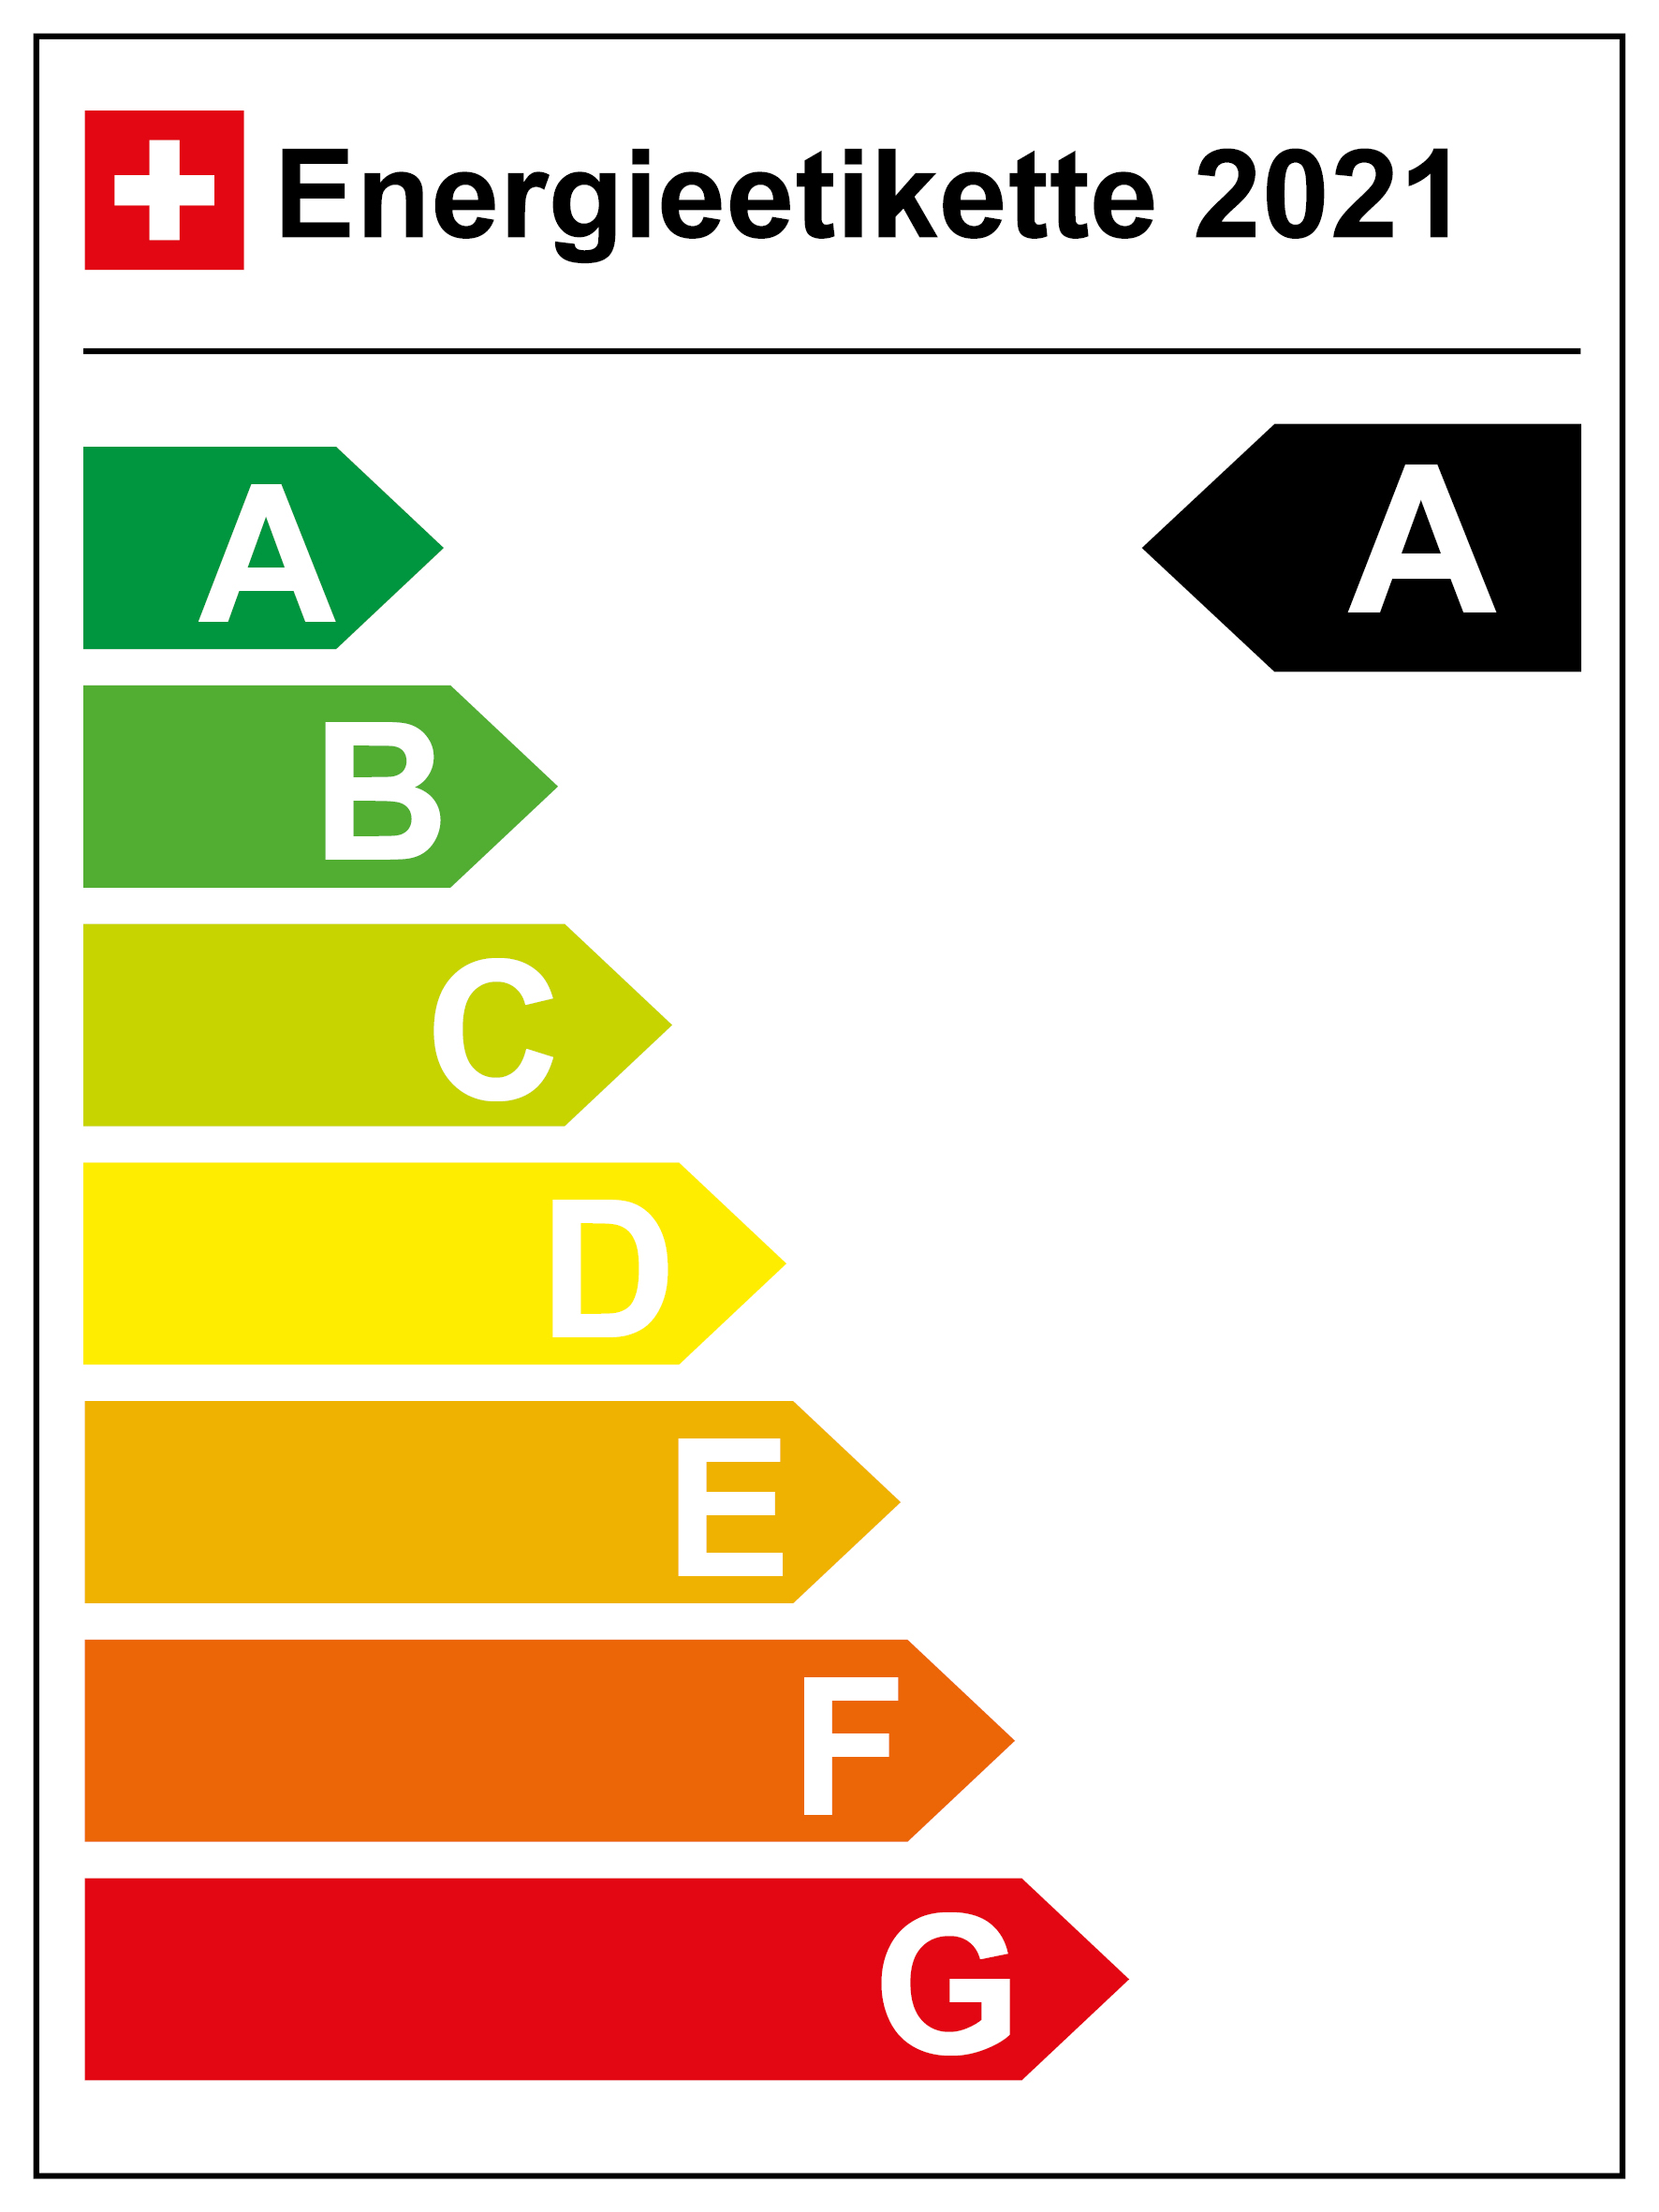 Energy rating: A